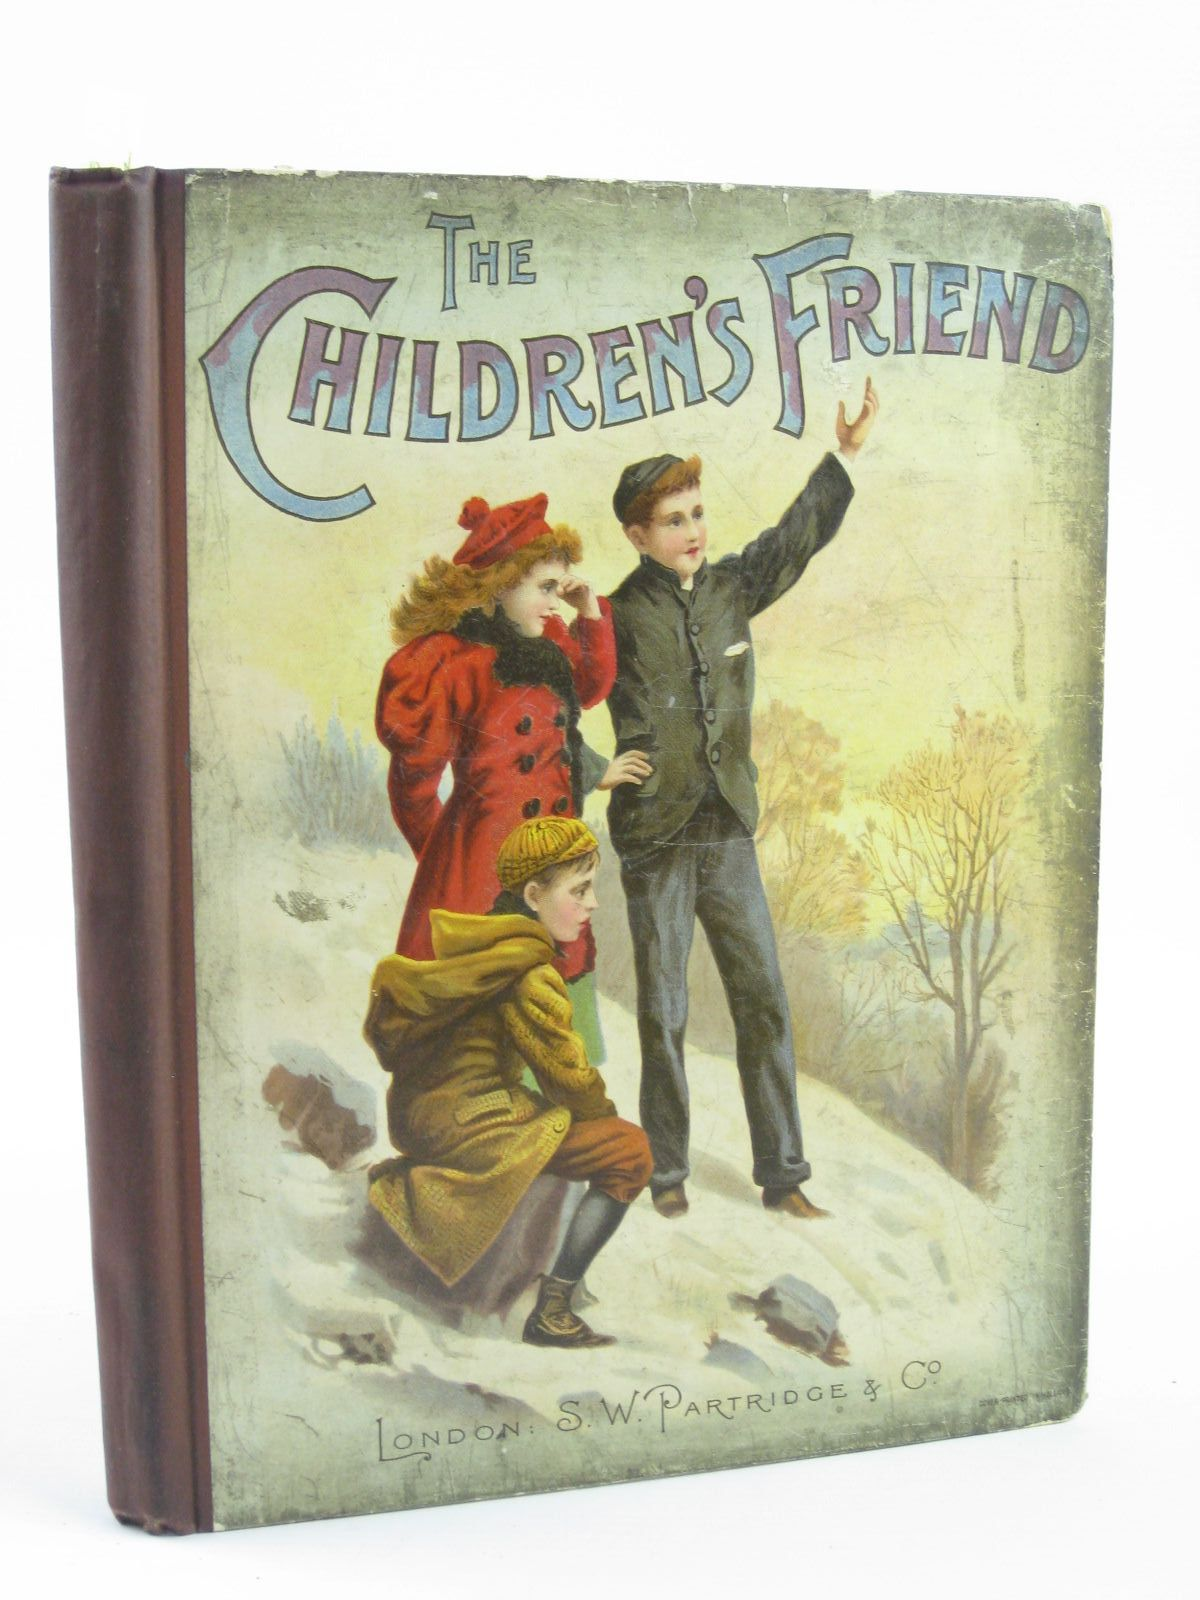 Photo of THE CHILDREN'S FRIEND VOLUME XXXVII - 1897 written by Waterworth, E.M.<br />Potter, F. Scarlett<br />Chappell, Jennie<br />et al,  illustrated by Wain, Louis<br />Soper, George<br />et al.,  published by S.W. Partridge & Co. (STOCK CODE: 1501396)  for sale by Stella & Rose's Books